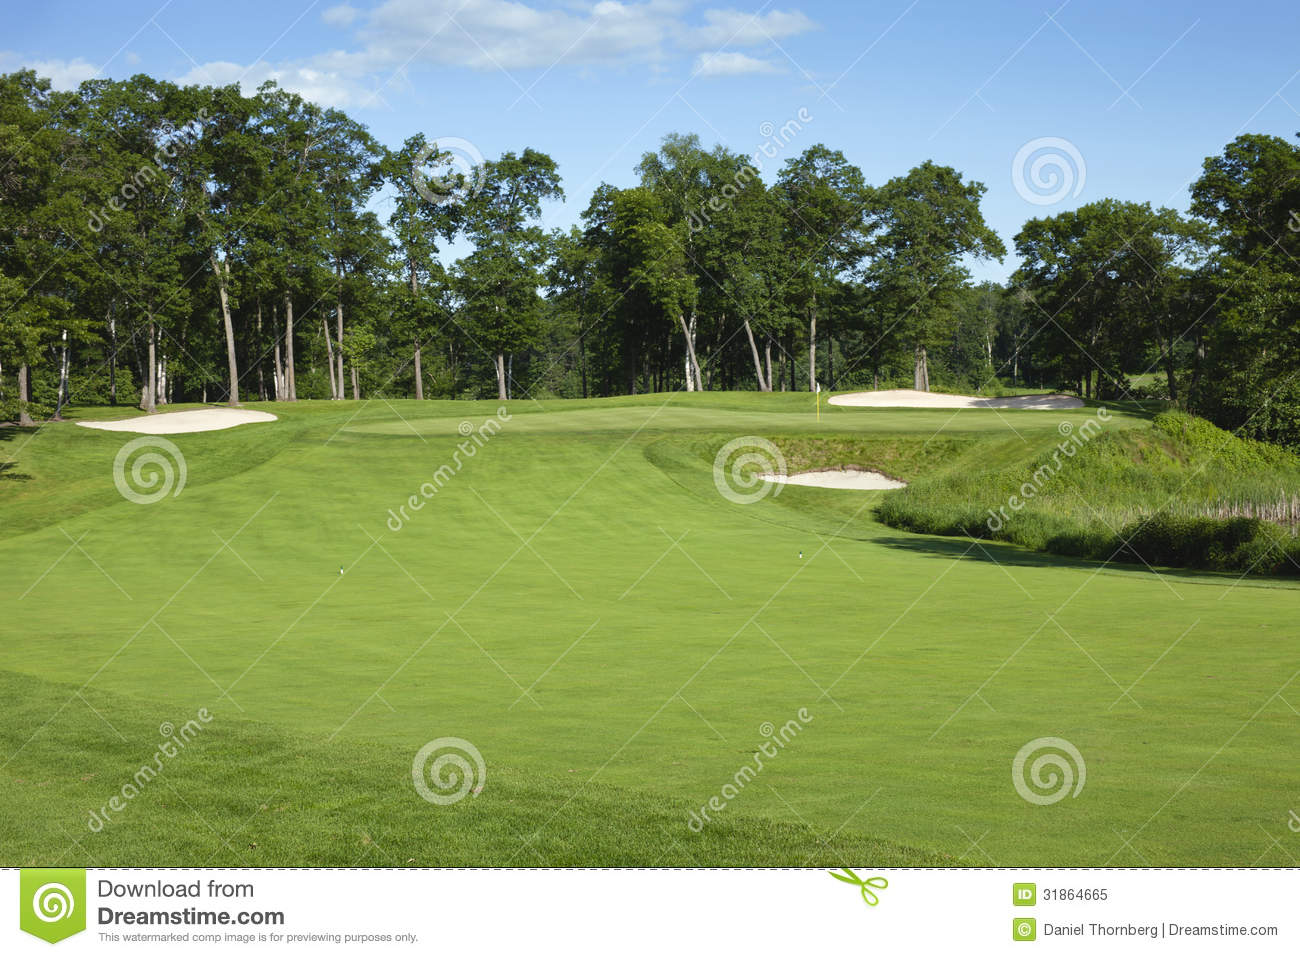 Golf Fairway And Green With Bunkers Royalty Free Stock